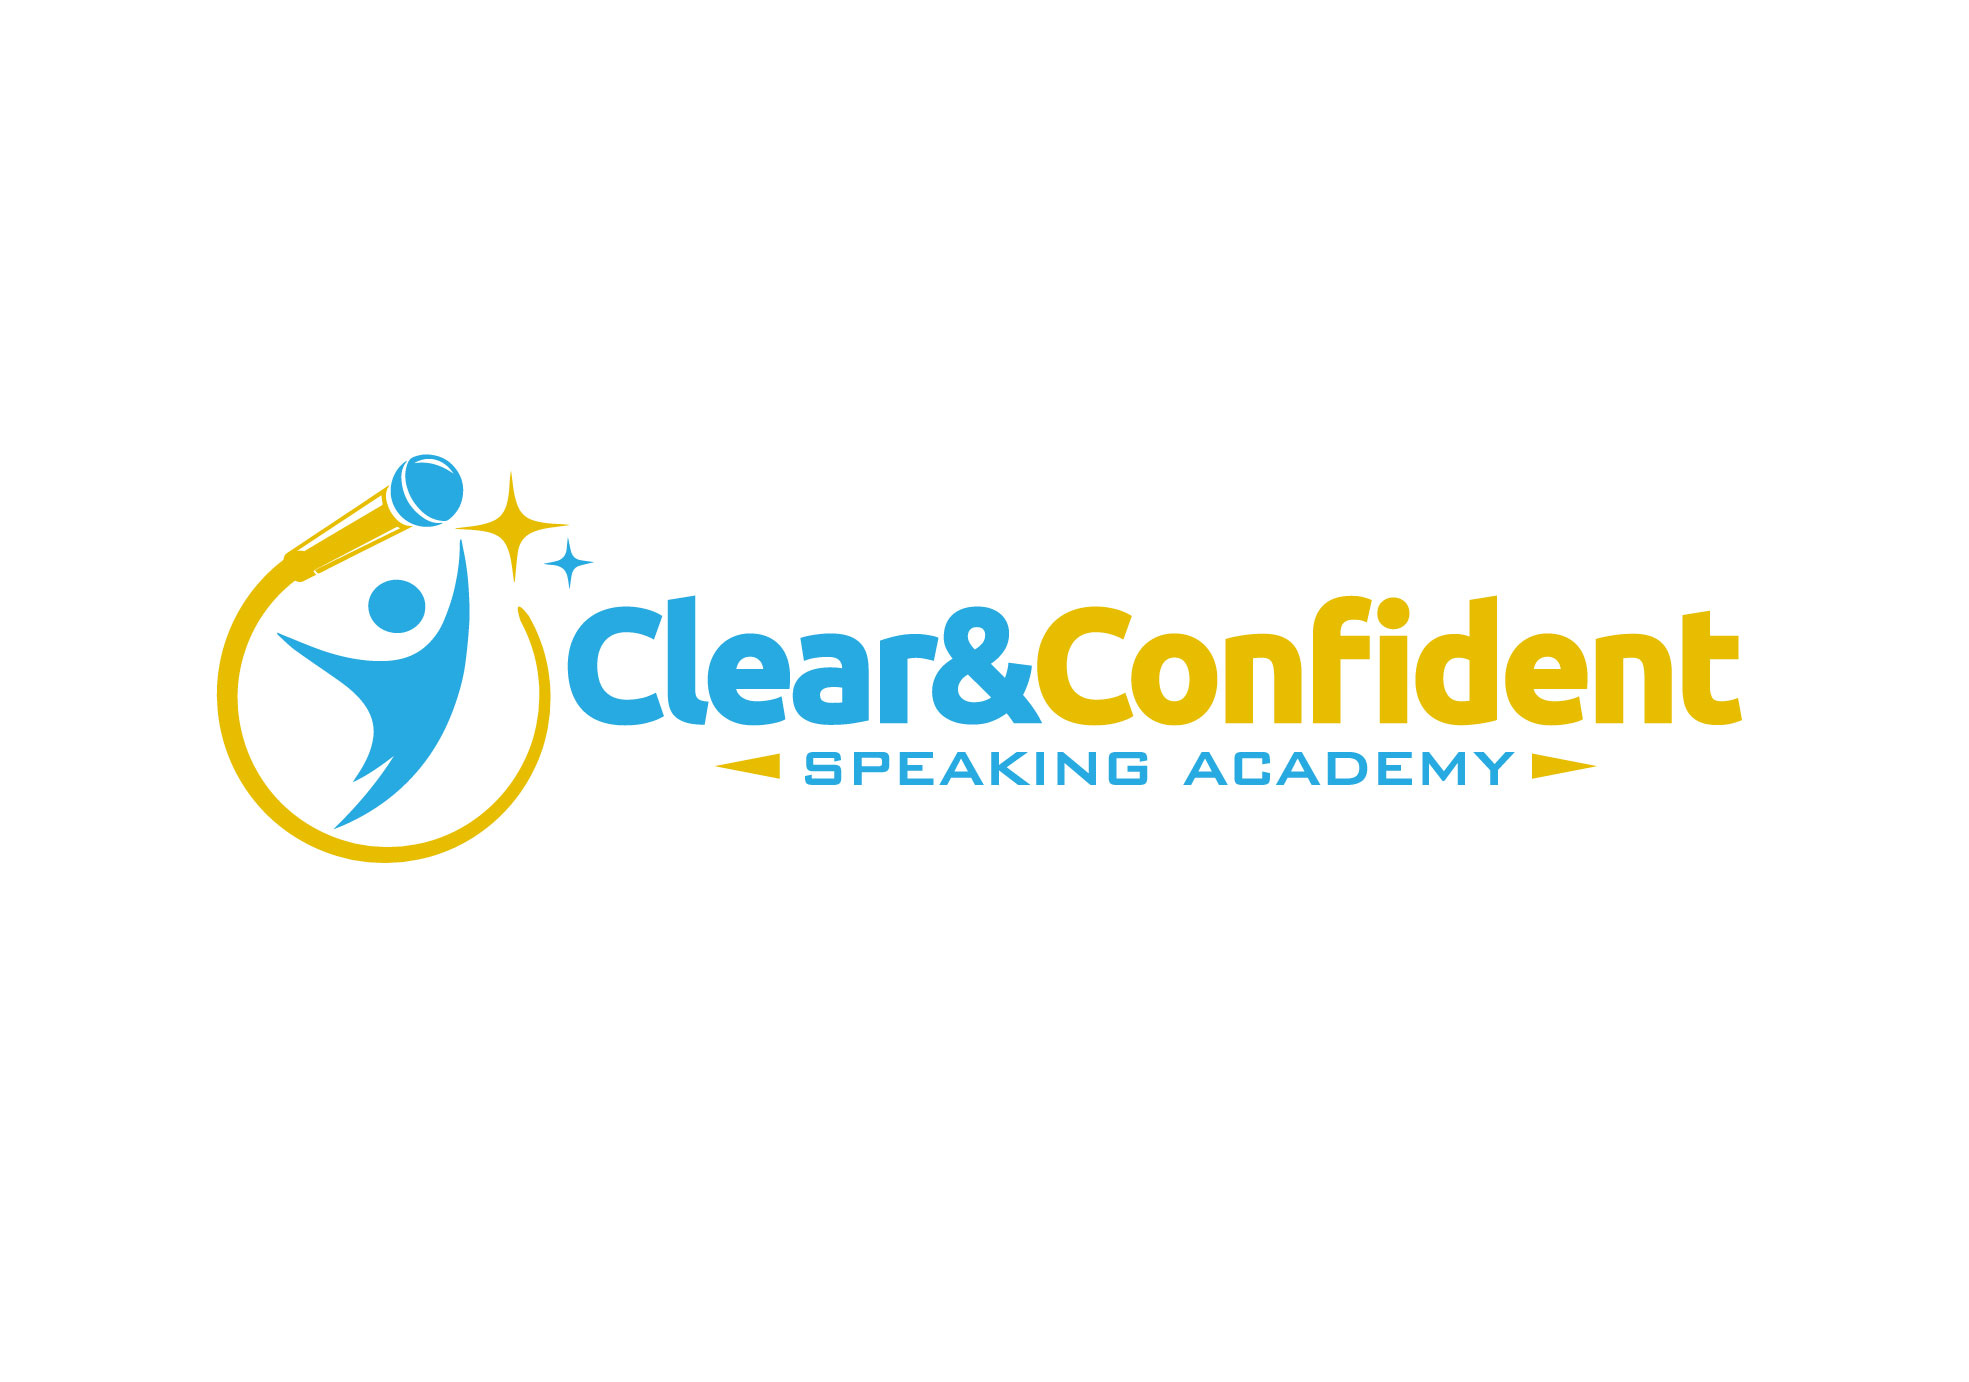 Clear And Confident Speaking Academy